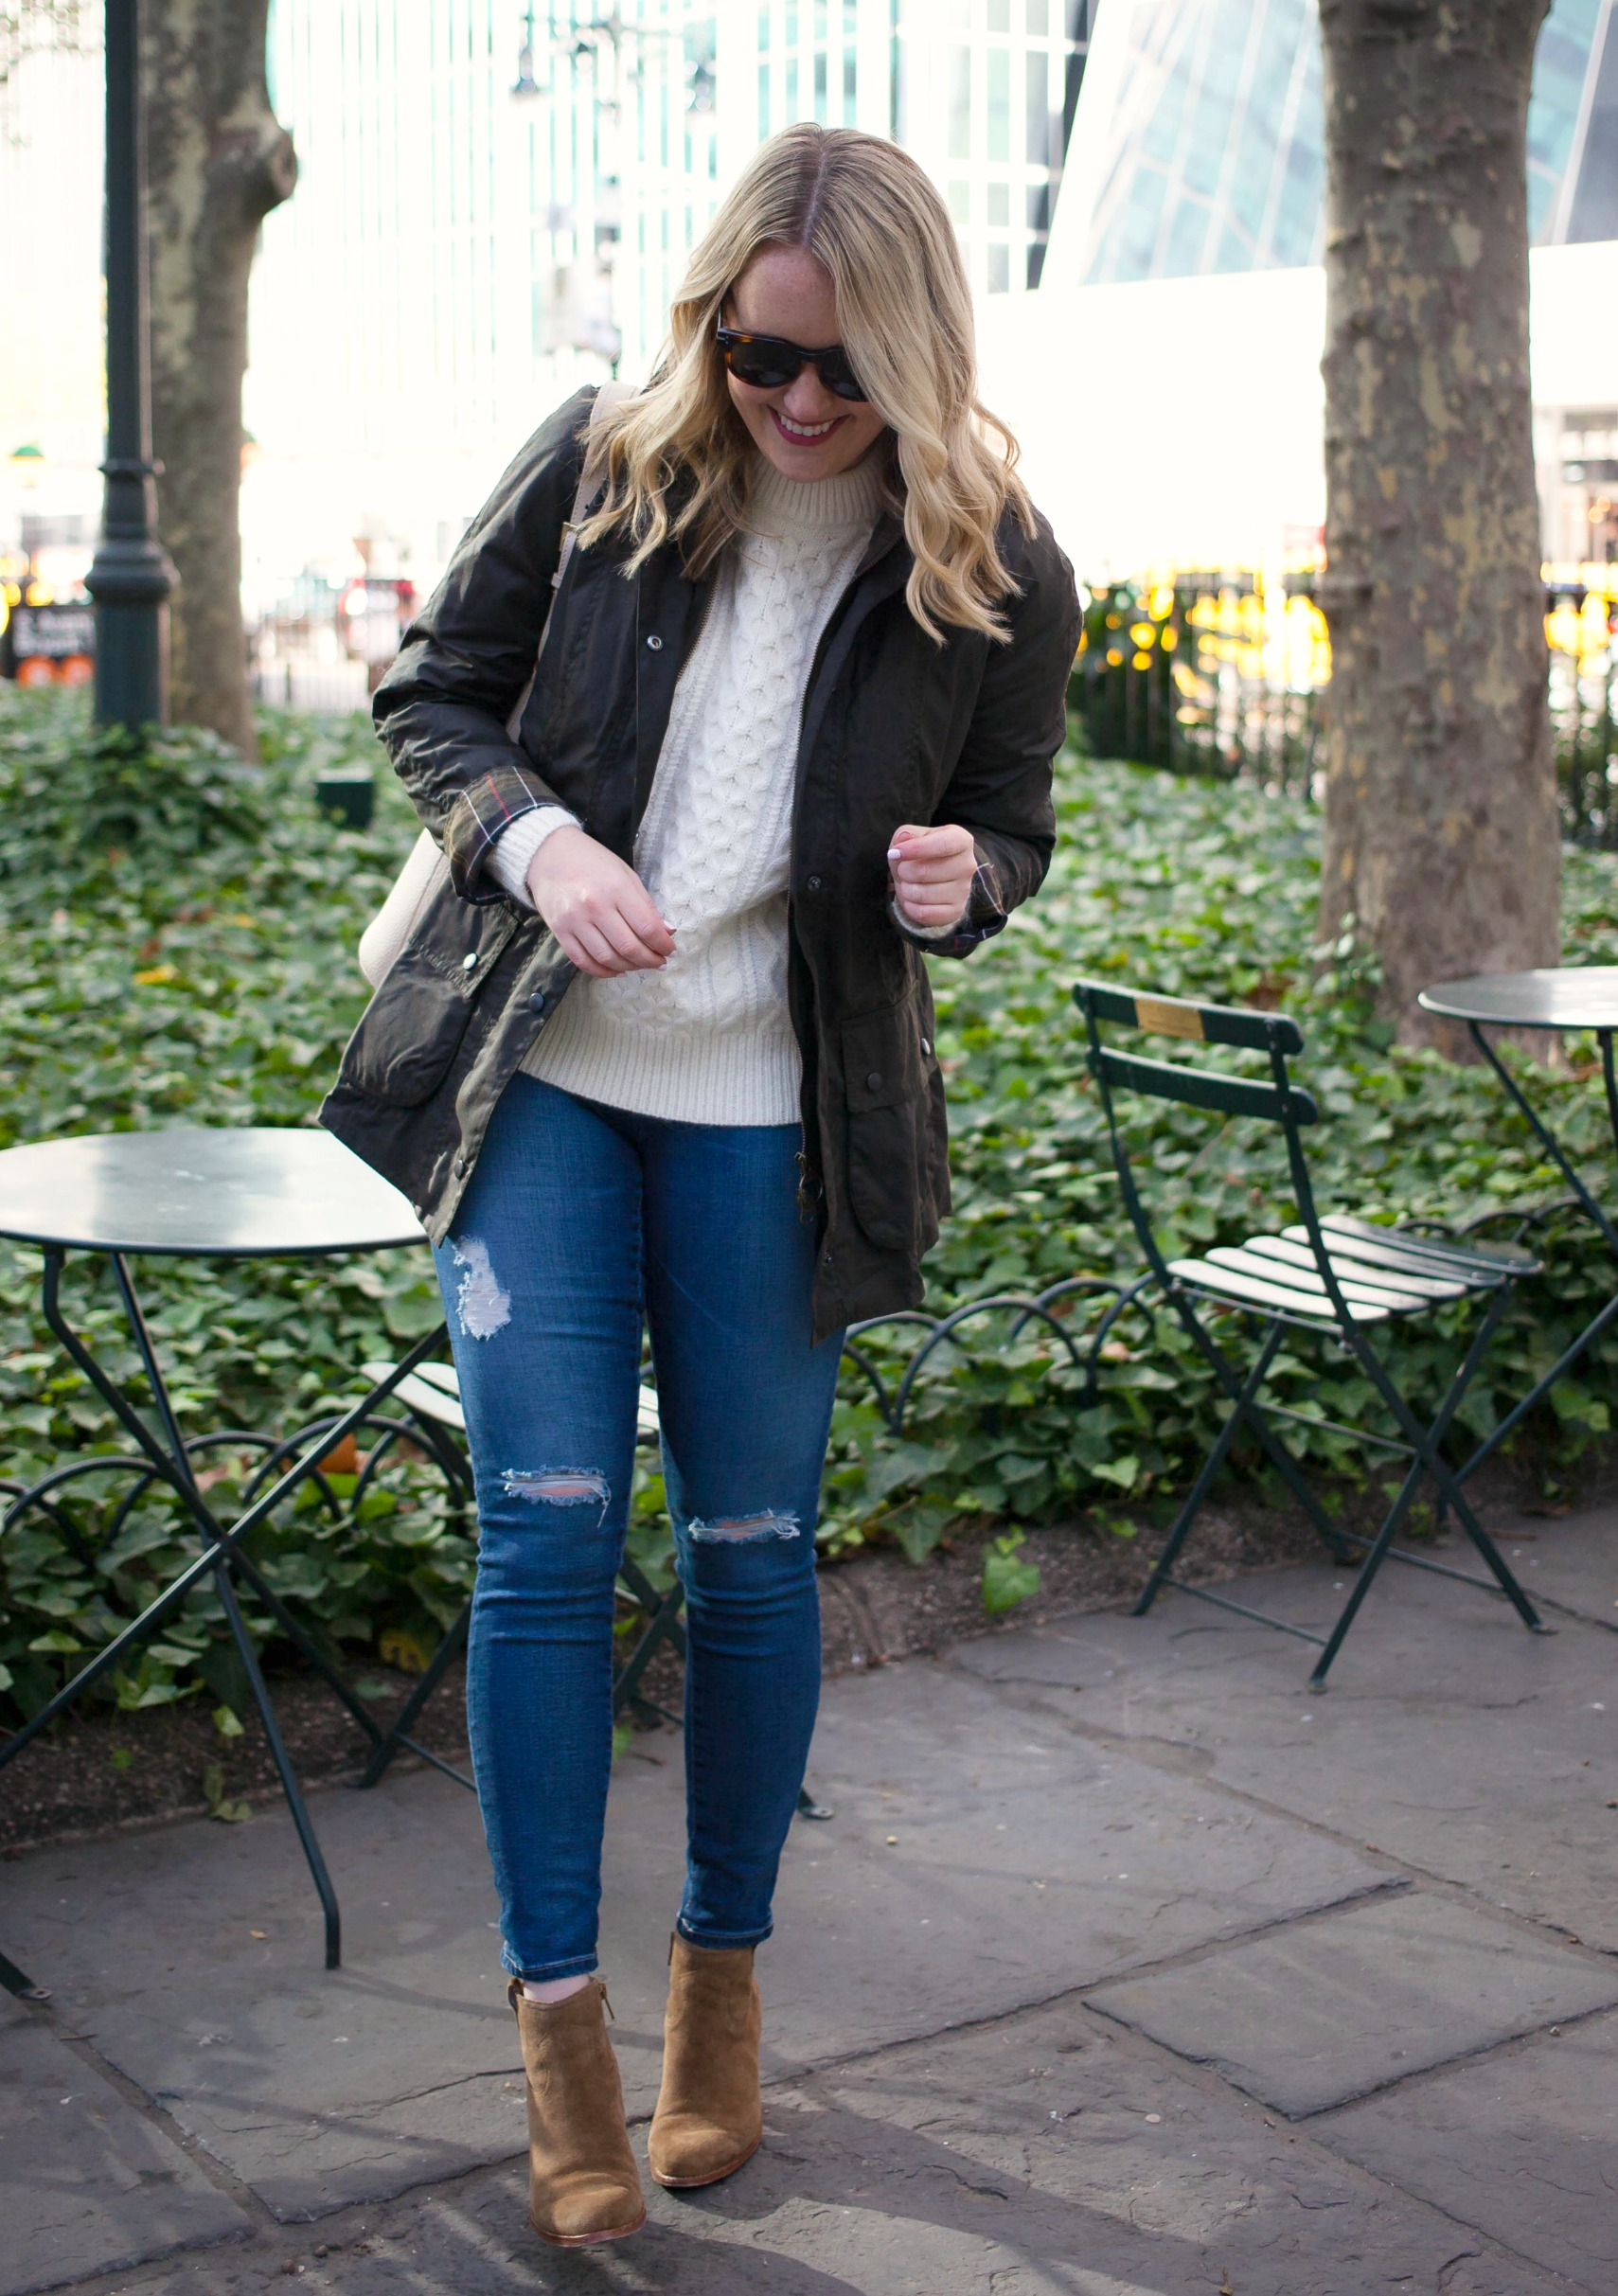 Classic Barbour Jacket and Cable Knit Sweater on Meghan Donovan of wit & whimsy